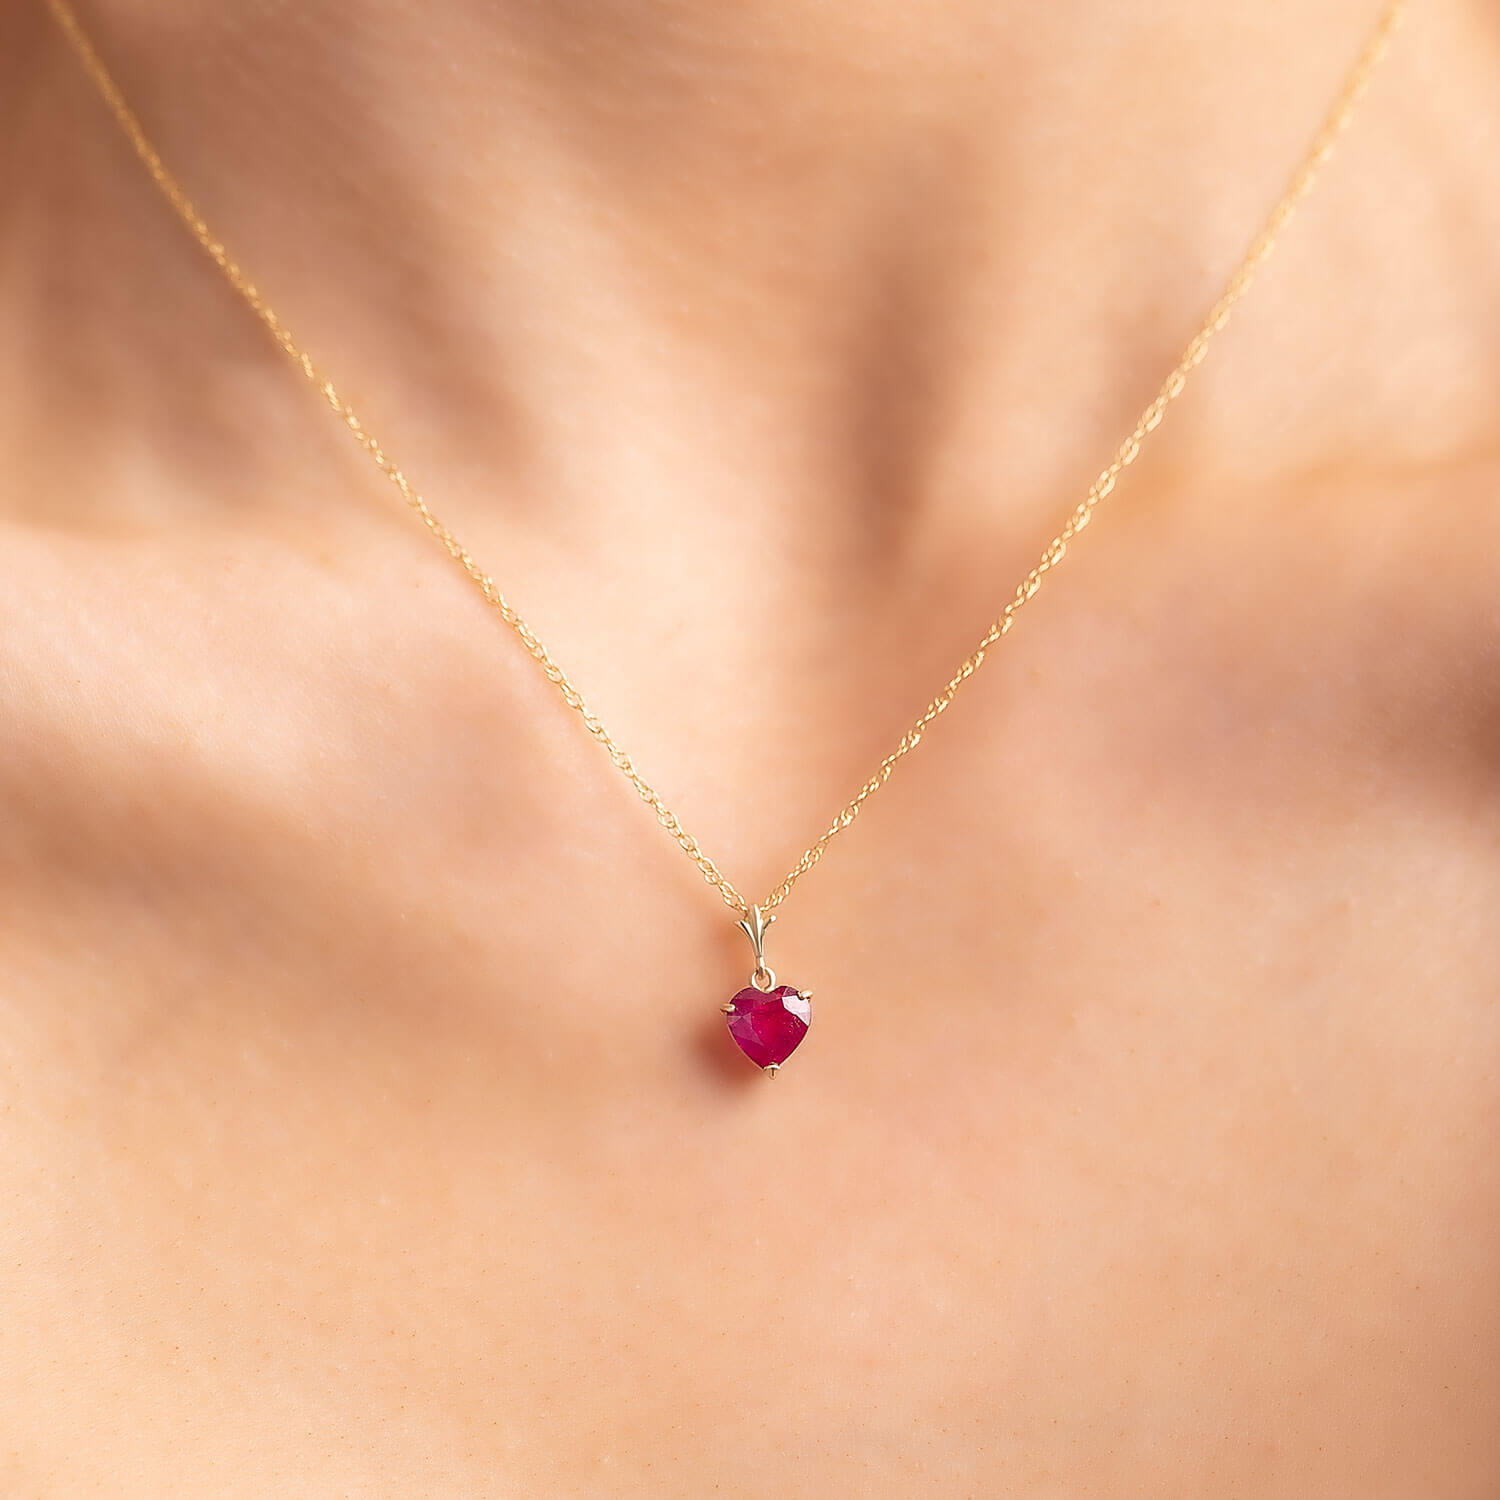 Ruby Heart Pendant Necklace 1.45 ct in 9ct Gold